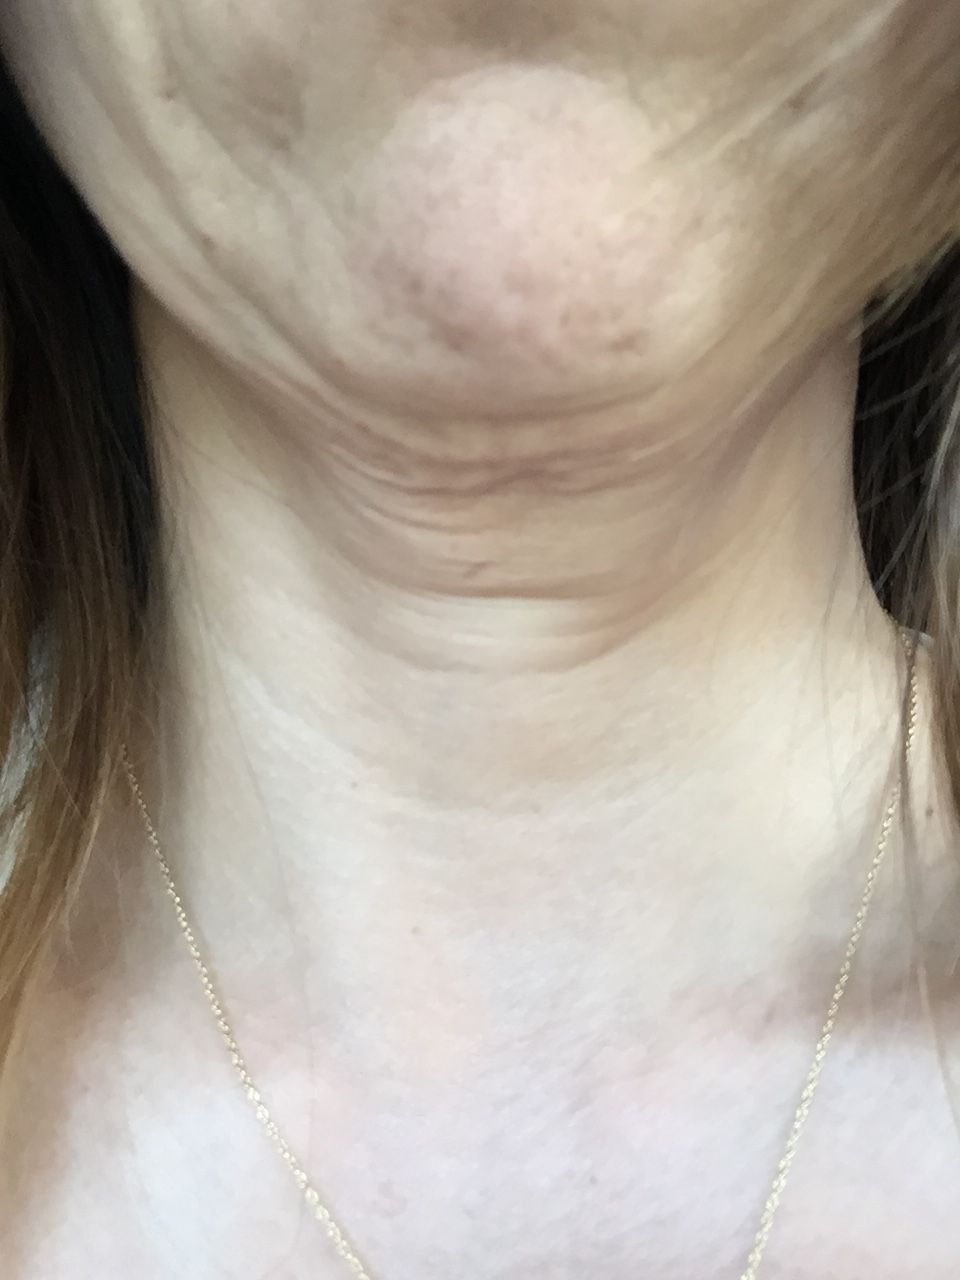 weight loss skin neck